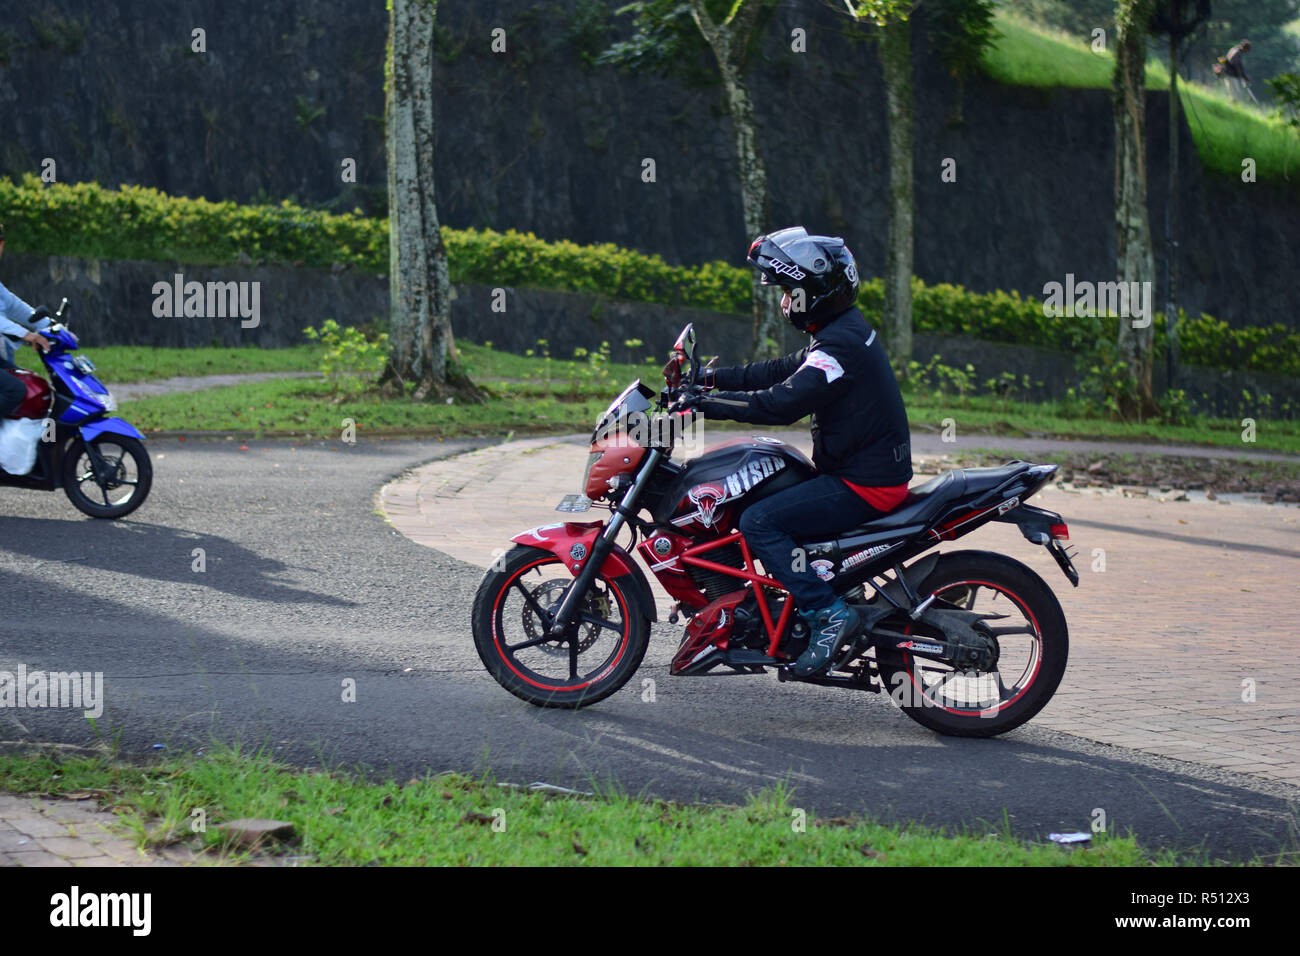 BEKASI, WEST JAVA, INDONESIA. DESEMBER 1, 2018 : Unrecognized people, riders with black red motorcycles use helmet. editorial use only - Stock Image